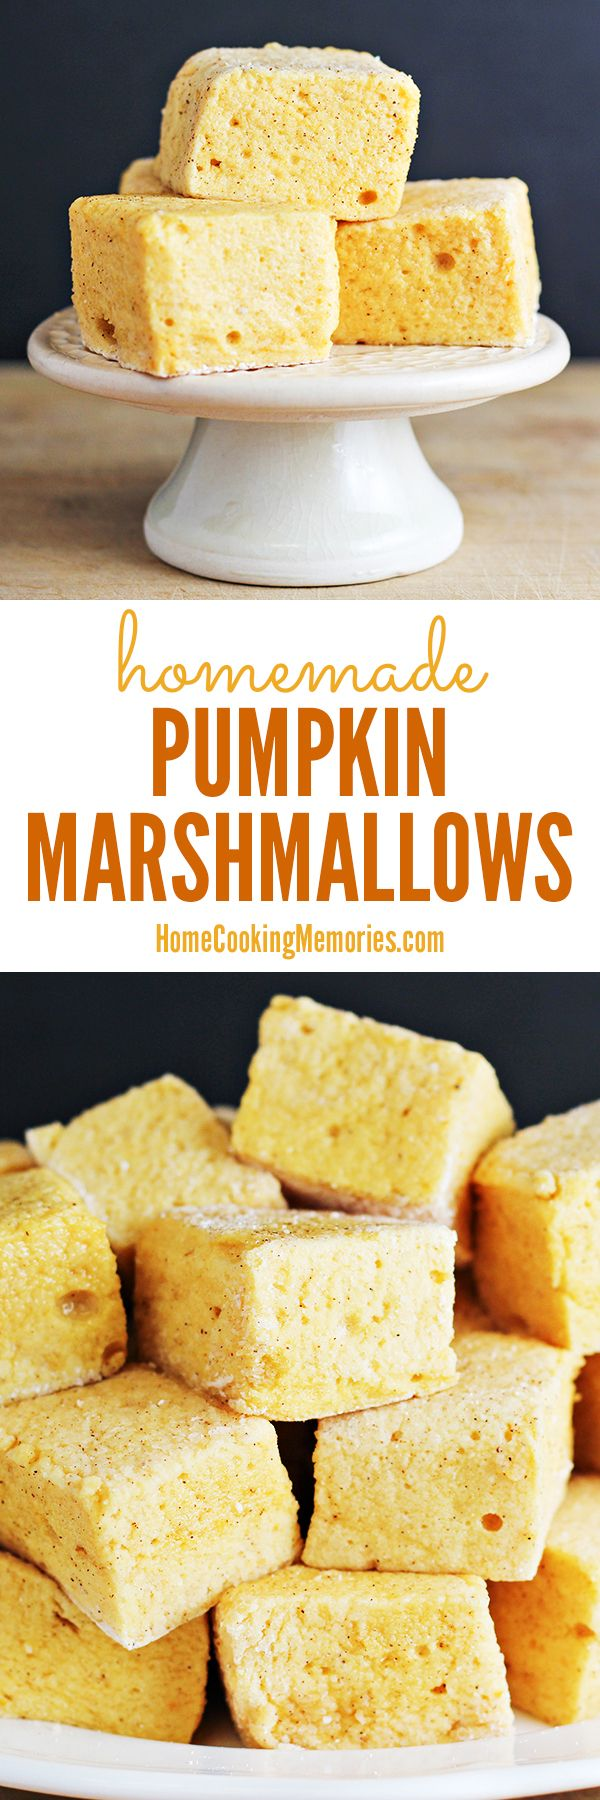 PUMPKIN MARSHMALLOWS  -- homemade marshmallow recipe that are made with pumpkin coffee creamer! Drop one or two into your coffee or hot chocolate for the best fall treat!